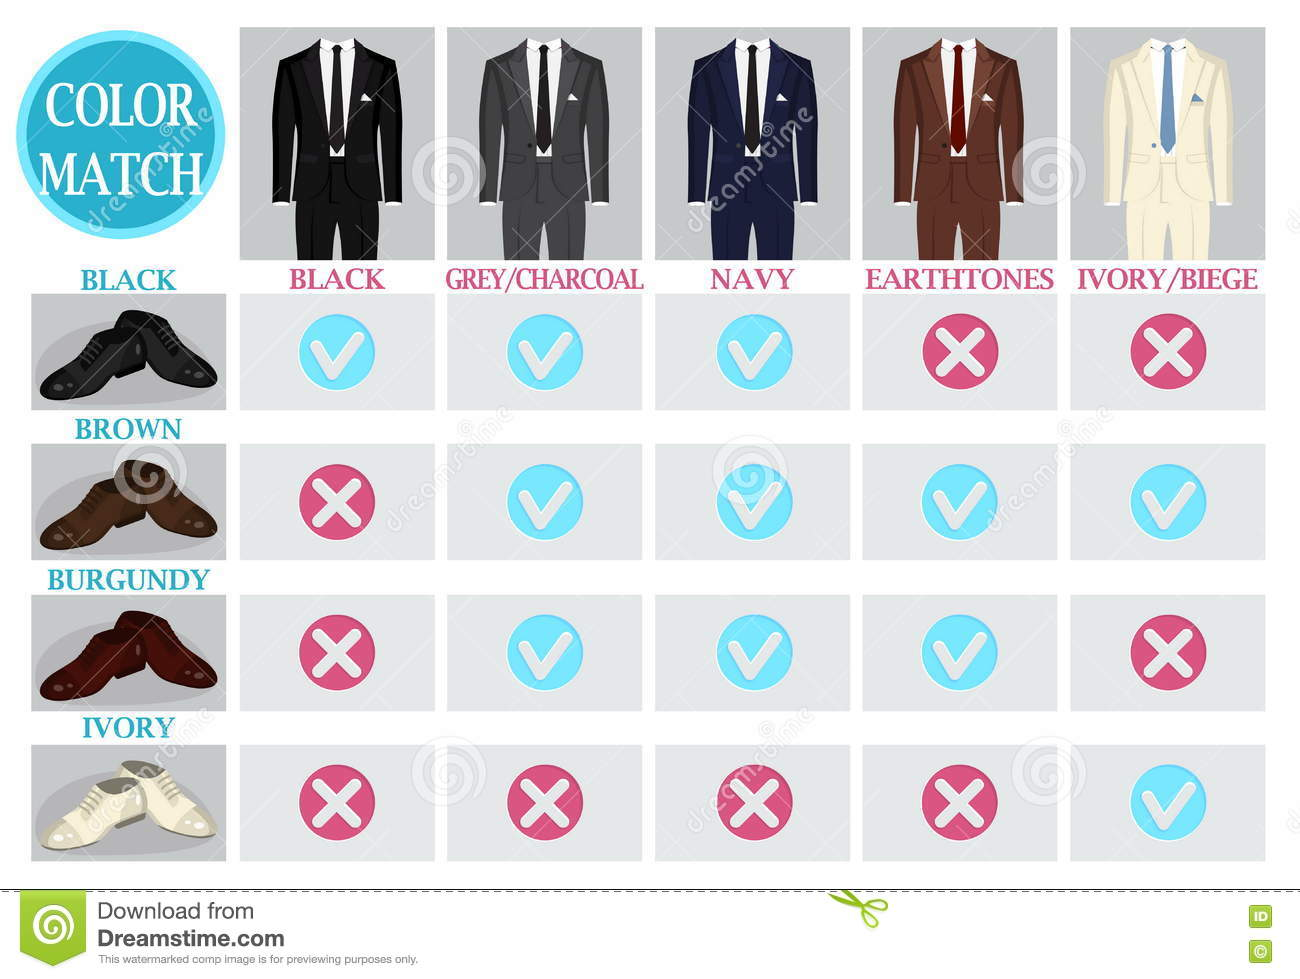 1c87aefec Color Mix Match Guide For Shoes And Suit Stock Vector - Illustration ...